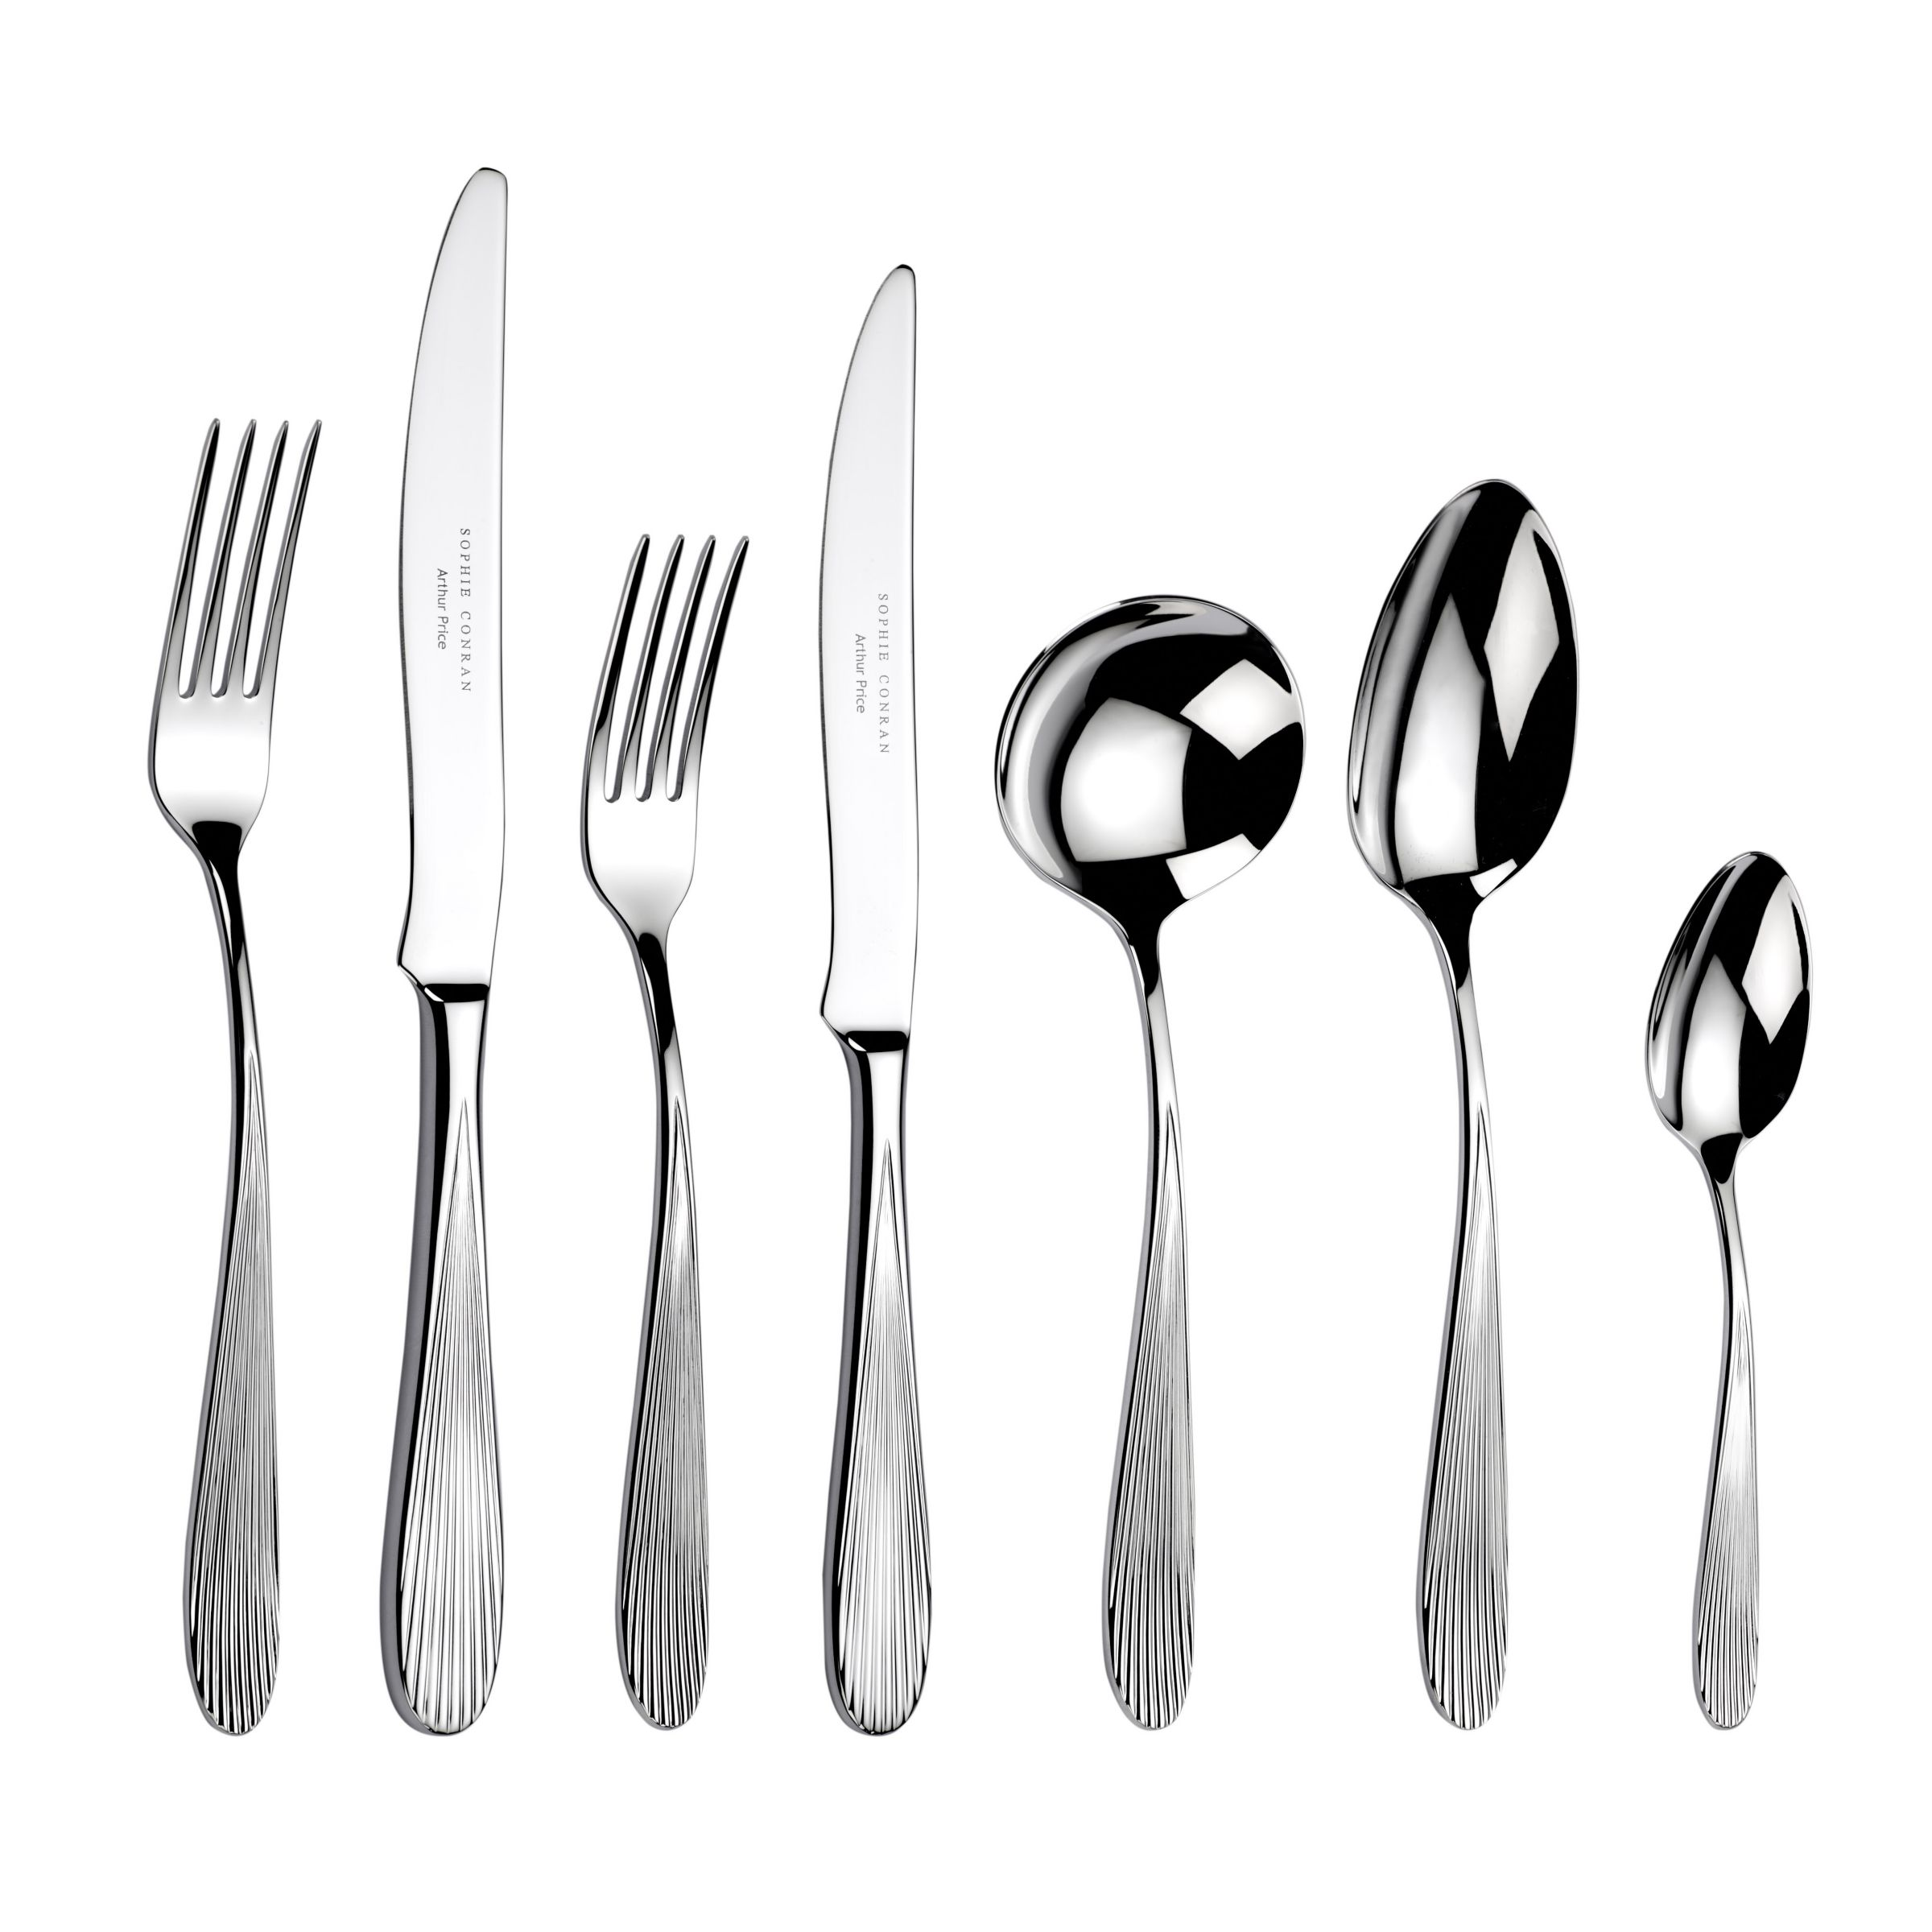 Sophie Conran for Arthur Price Sophie Conran for Arthur Price Dune Cutlery Set, 7 Piece